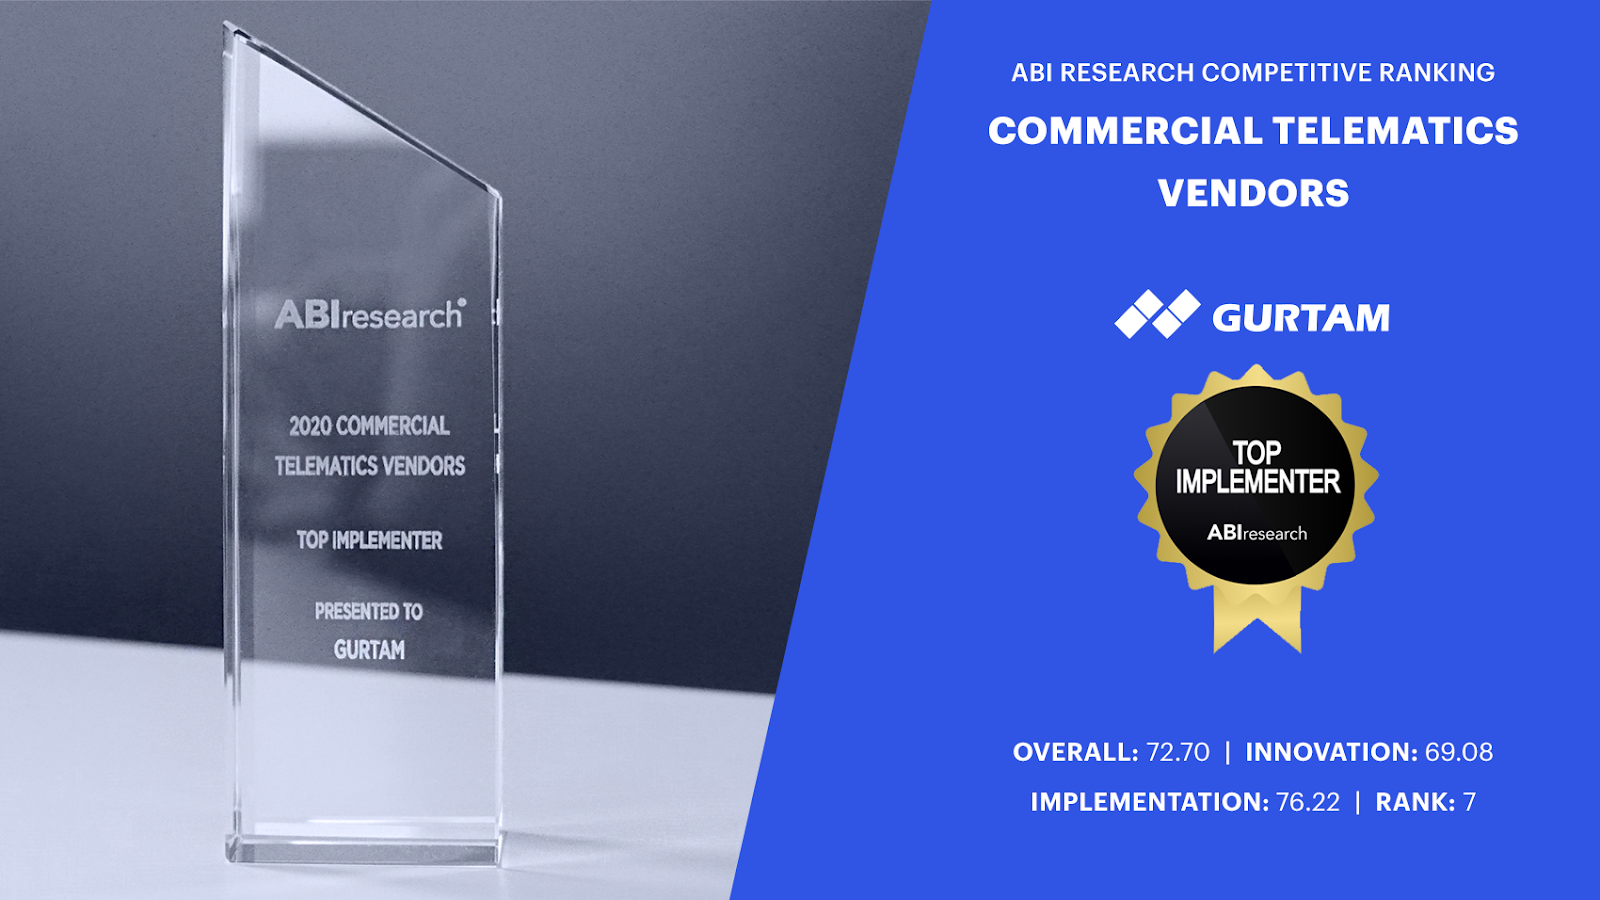 an award from ABI Research